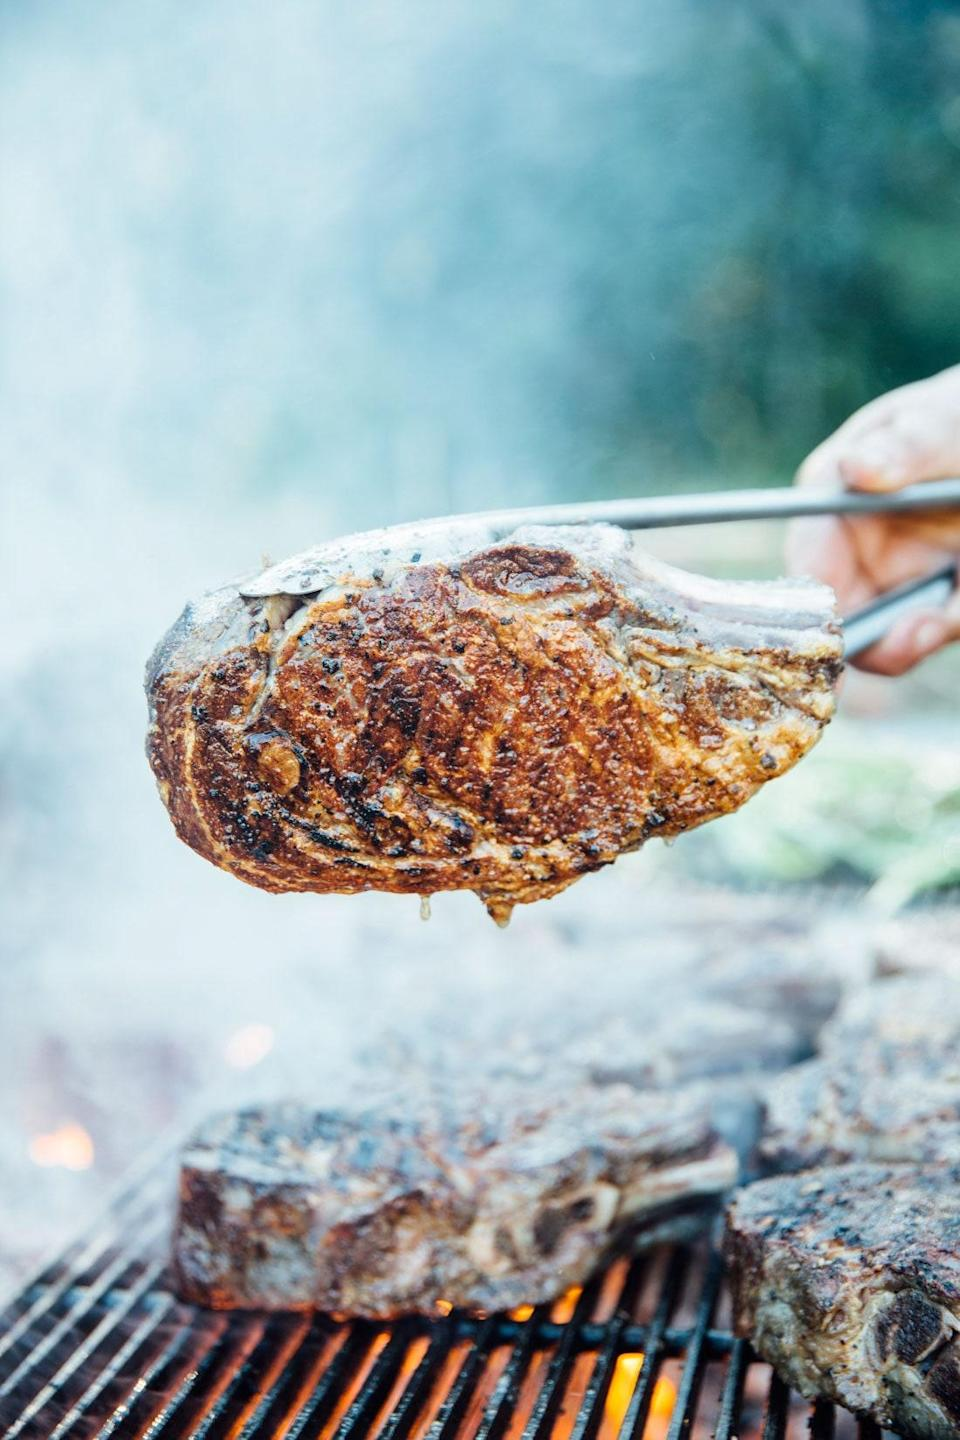 """Let it rain with the kosher salt—for the best flavor, you want to season these simple steaks really well before they get grilled. Great with <a href=""""http://www.bonappetit.com/recipe/garlicky-harissa?mbid=synd_yahoo_rss"""" rel=""""nofollow noopener"""" target=""""_blank"""" data-ylk=""""slk:Garlicky Harissa"""" class=""""link rapid-noclick-resp"""">Garlicky Harissa</a> or <a href=""""http://www.bonappetit.com/recipe/charred-tomatillo-chermoula?mbid=synd_yahoo_rss"""" rel=""""nofollow noopener"""" target=""""_blank"""" data-ylk=""""slk:Charred Tomatillo Chermoula"""" class=""""link rapid-noclick-resp"""">Charred Tomatillo Chermoula</a>. <a href=""""https://www.bonappetit.com/recipe/grilled-bone-in-rib-eye?mbid=synd_yahoo_rss"""" rel=""""nofollow noopener"""" target=""""_blank"""" data-ylk=""""slk:See recipe."""" class=""""link rapid-noclick-resp"""">See recipe.</a>"""